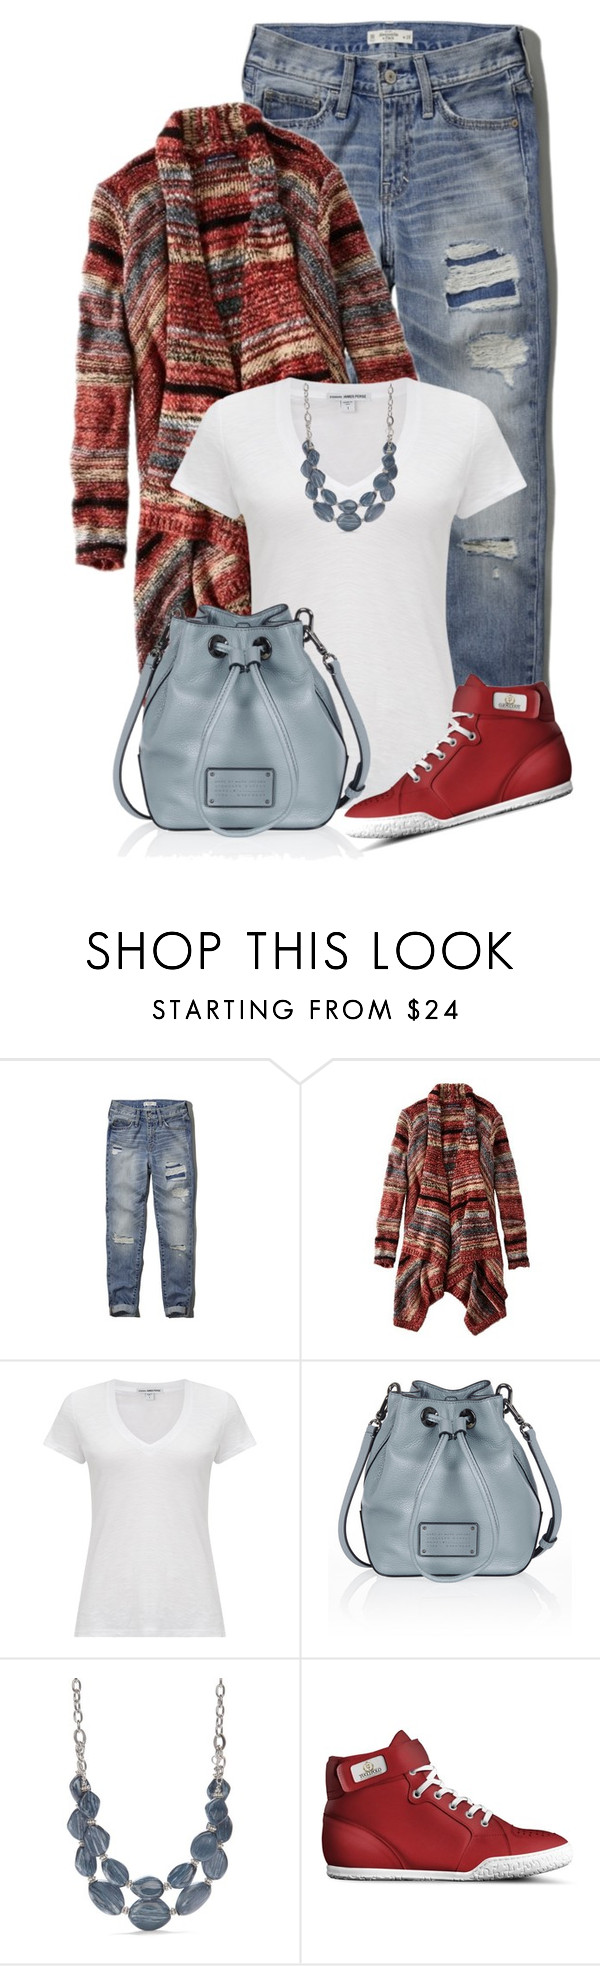 """ripped jeans"" by soleuza ❤ liked on Polyvore featuring Abercrombie & Fitch, American Eagle Outfitters, James Perse, Marc by Marc Jacobs and Ruby Rd."